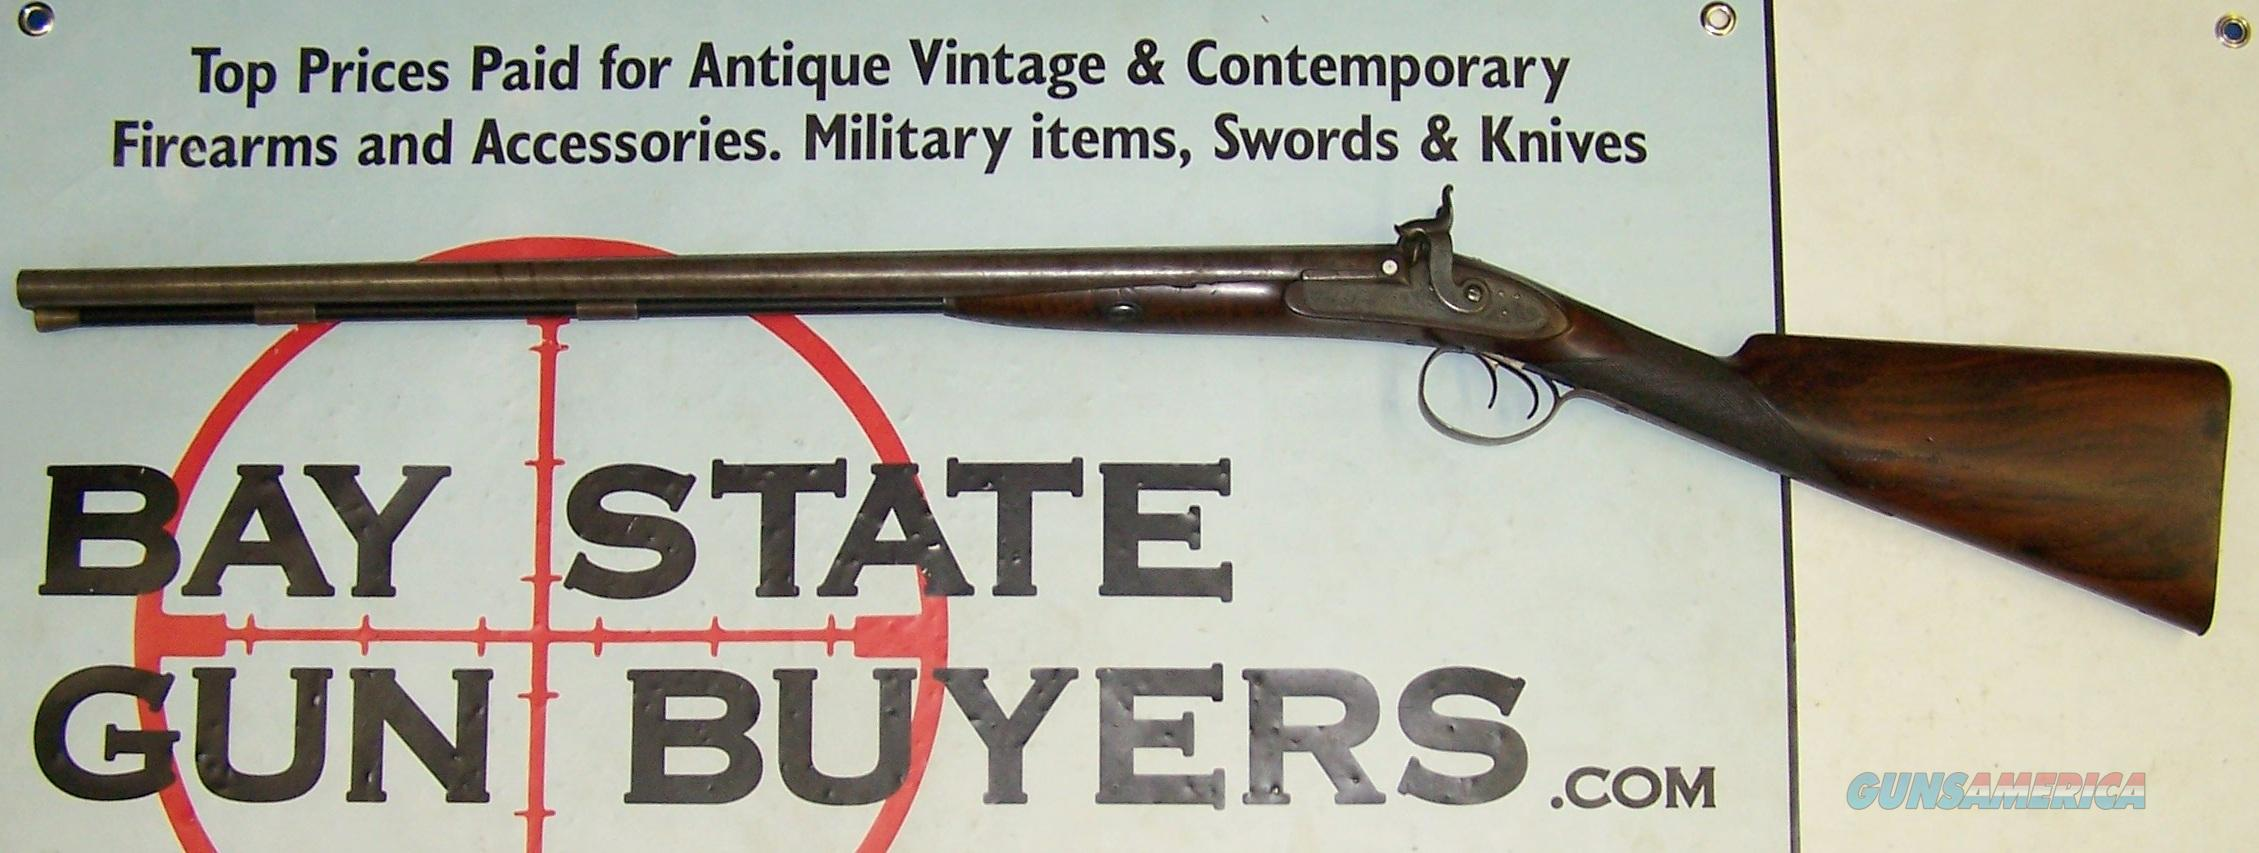 early Thomas Boss Double Barrel 16 ga. Shotgun Exposed Hammers HEAVILY ENGRAVED   Guns > Shotguns > Boss & Co. Shotguns